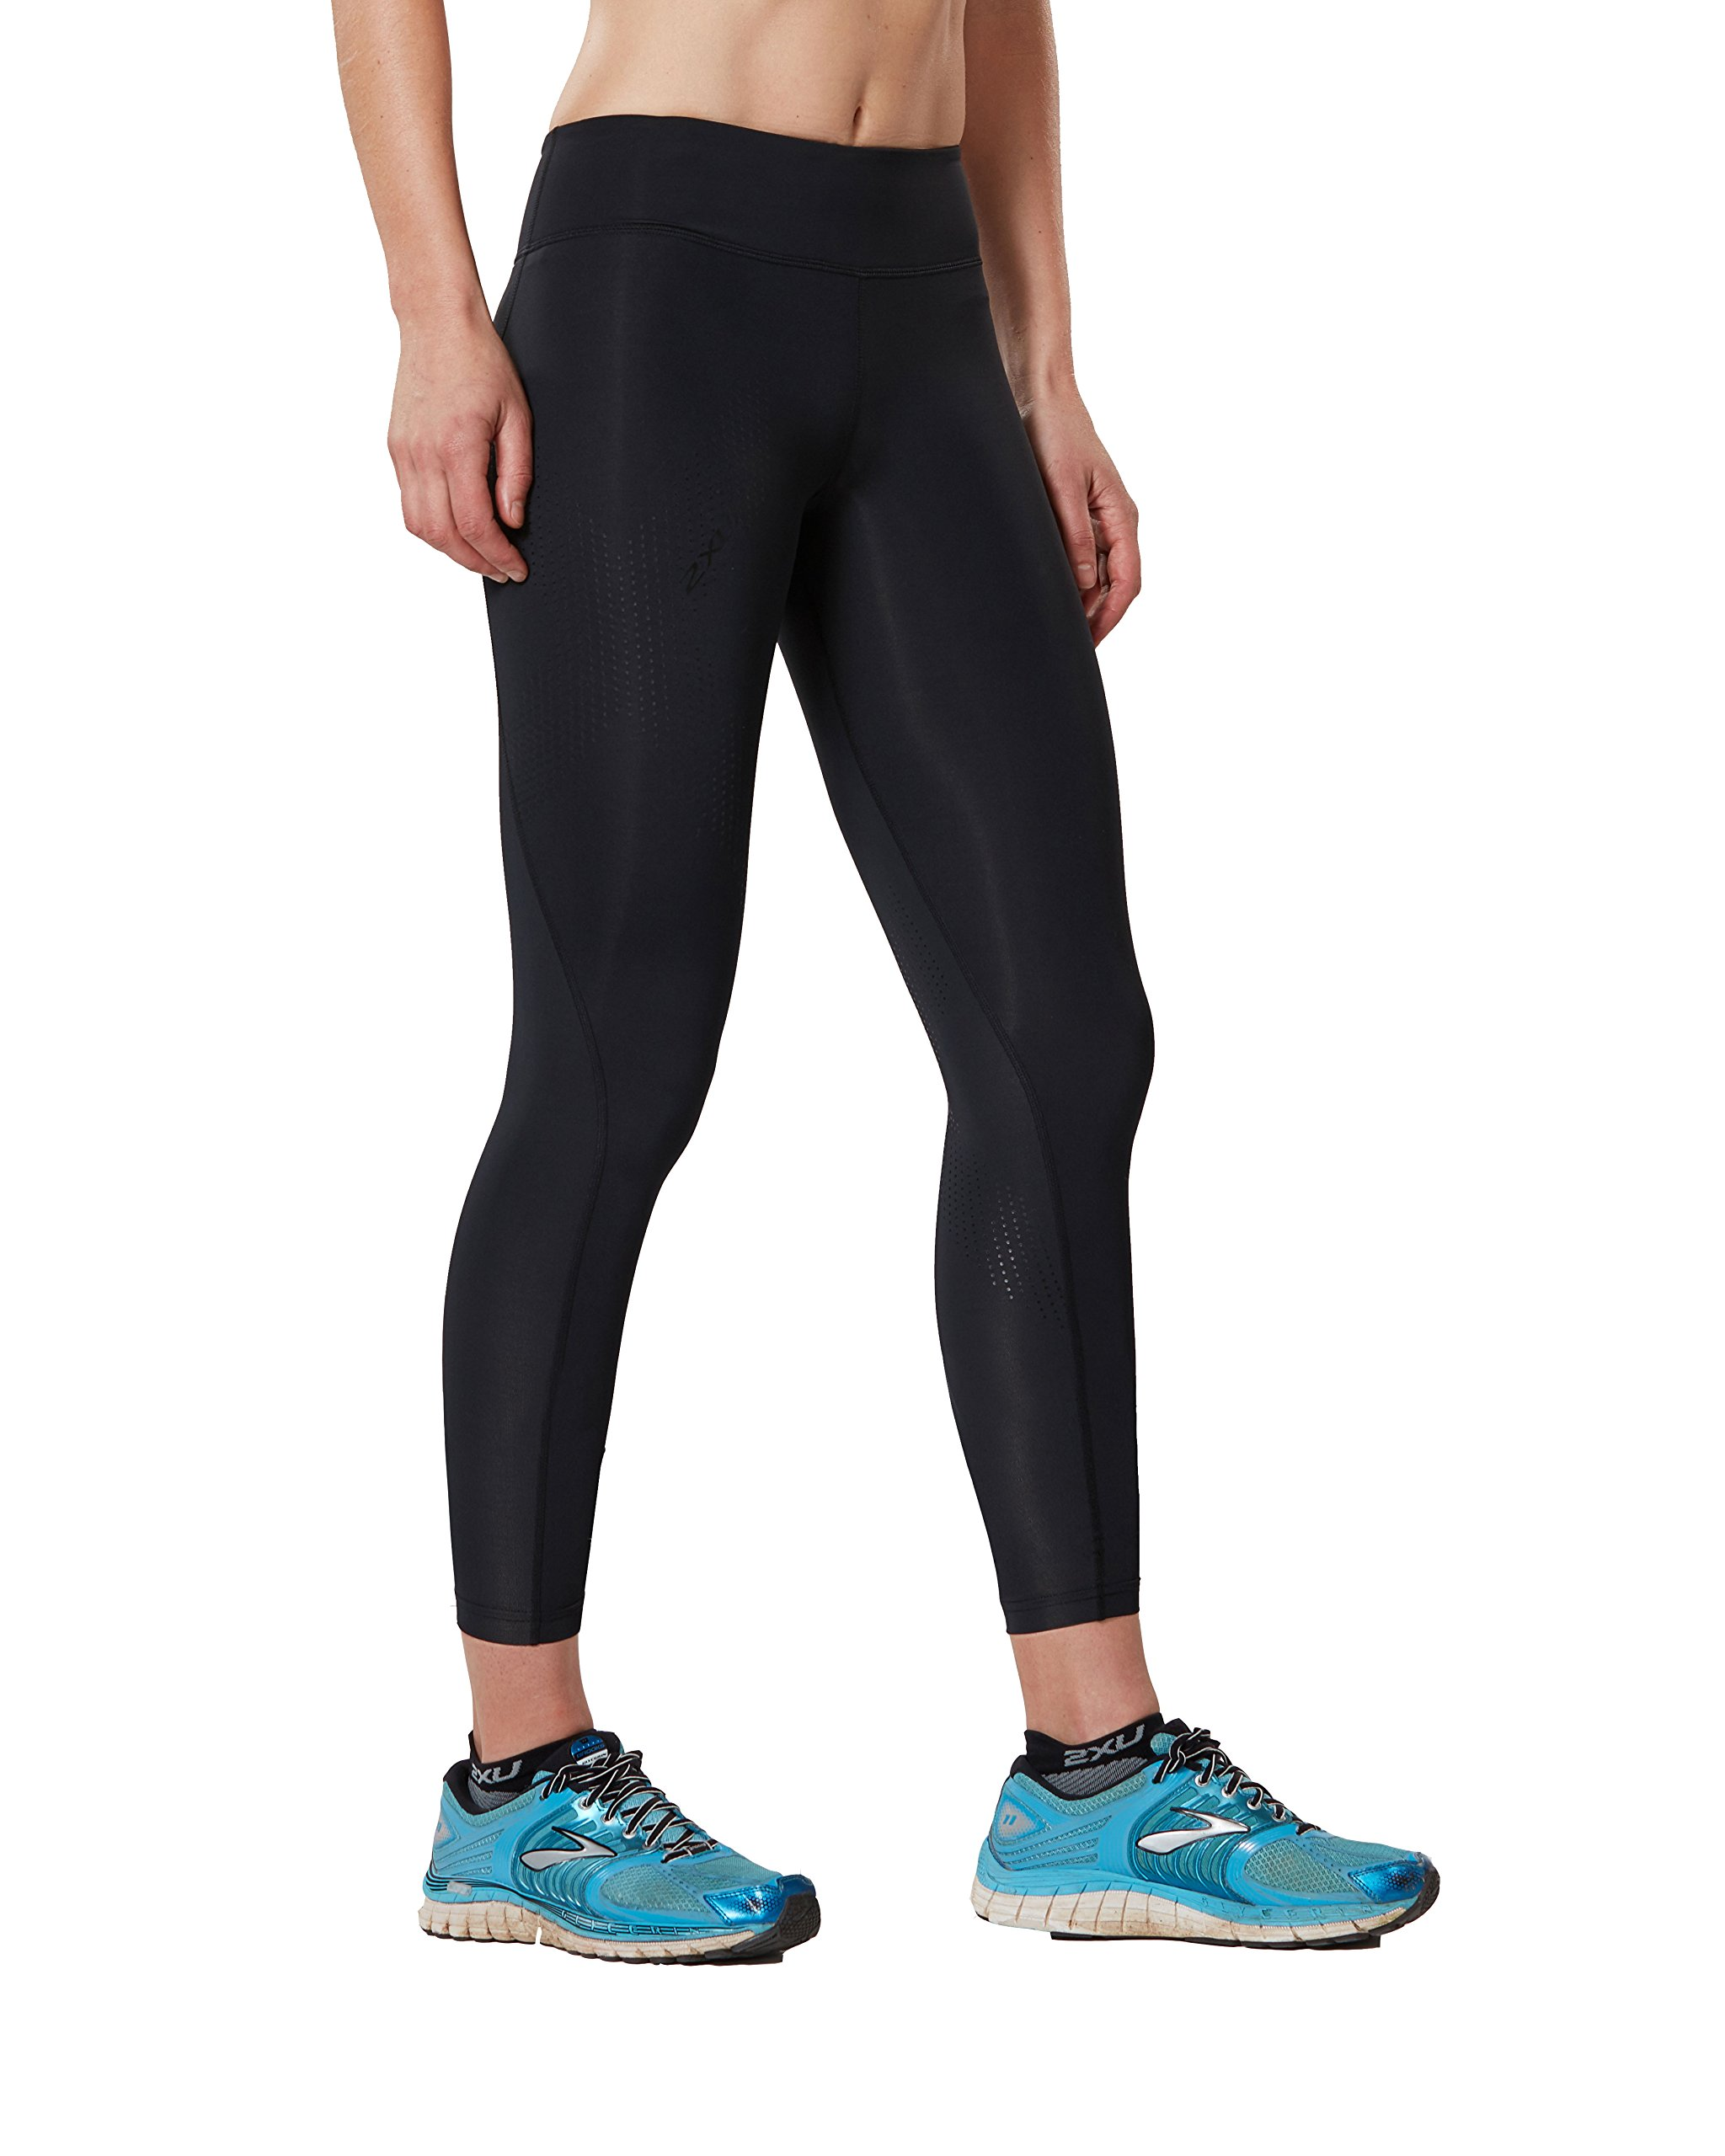 2XU Women's Mid-Rise 7/8 Compression Tights, Black/Dotted Black Logo, X-Small